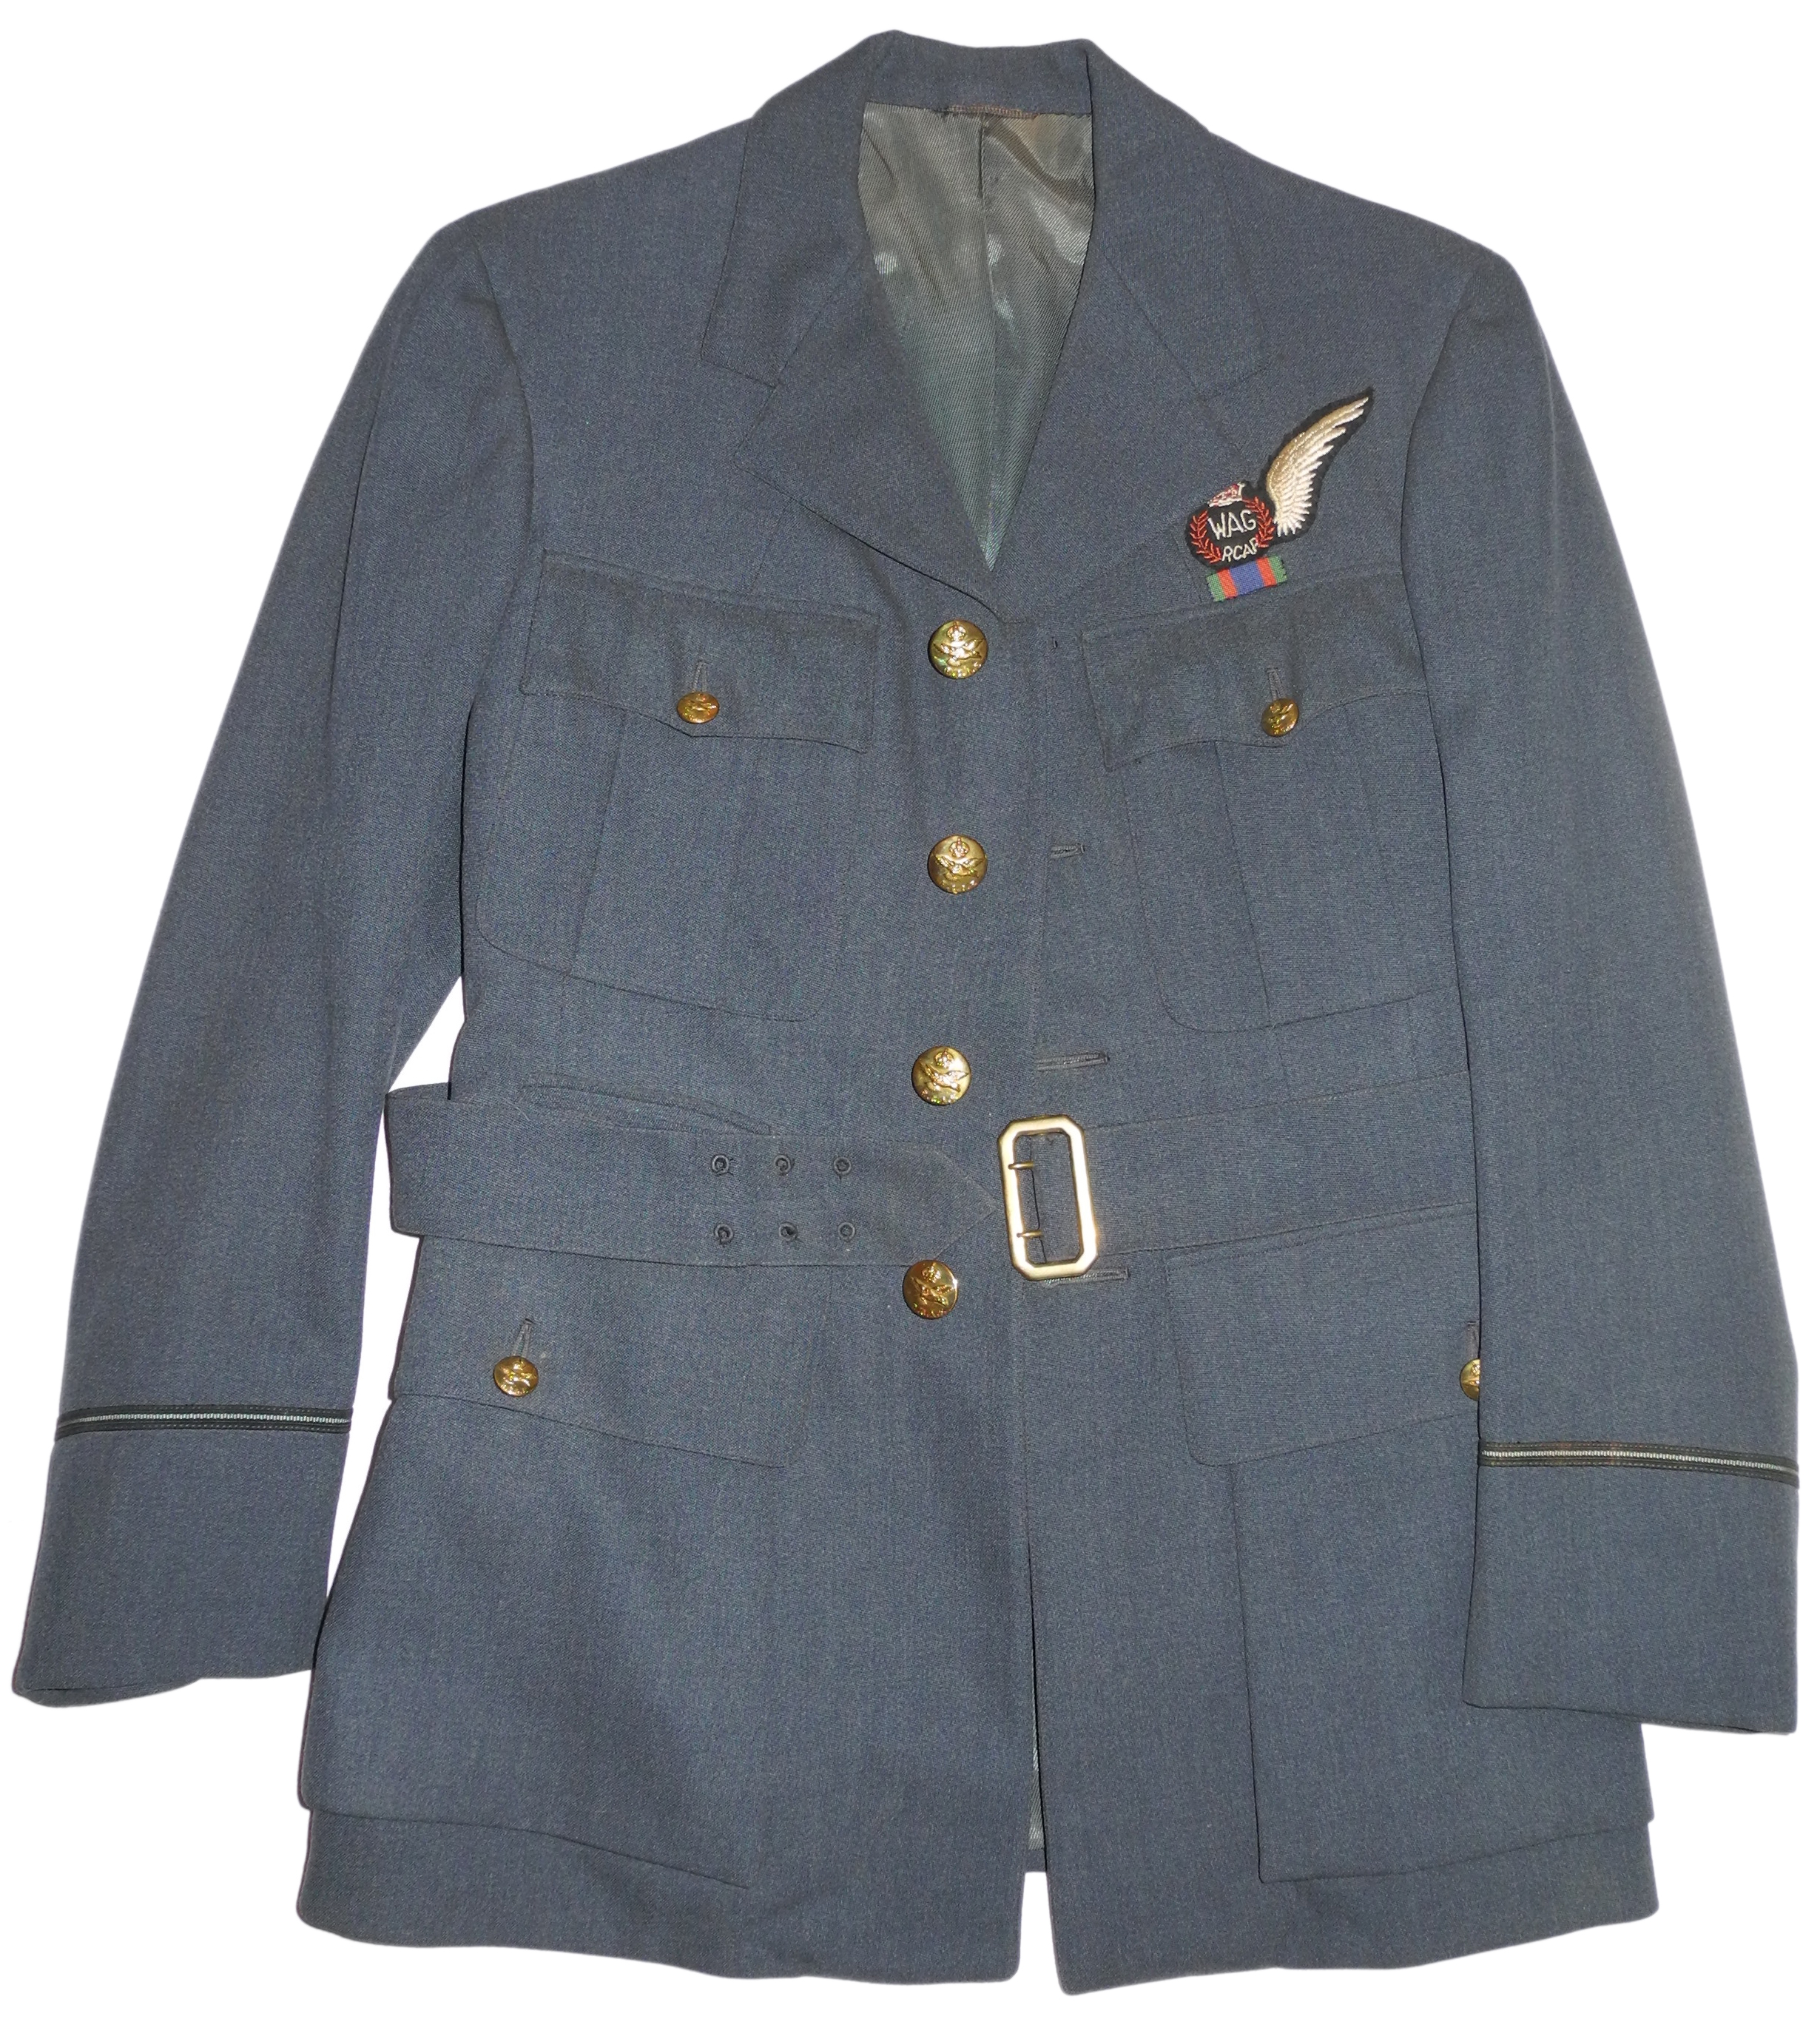 US made RCAF officer's service dress tunic with WAG wing